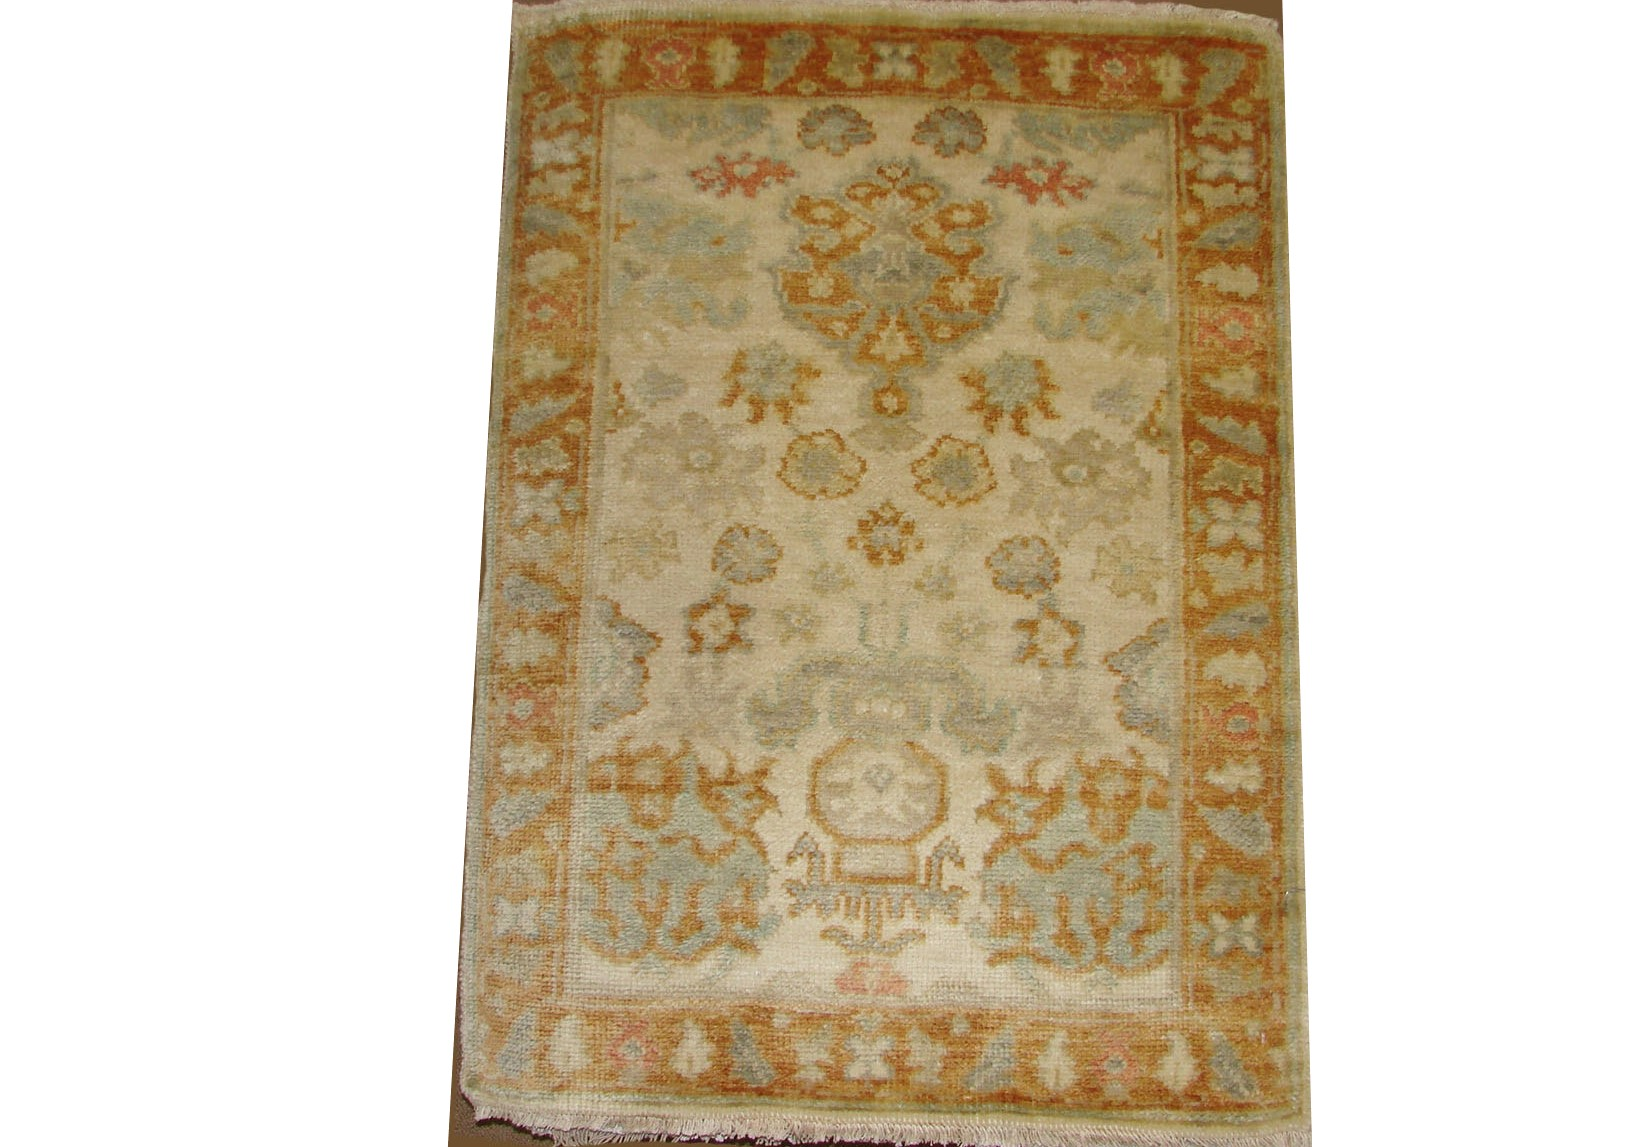 2X3 Oushak Hand Knotted Wool Area Rug - MR17872